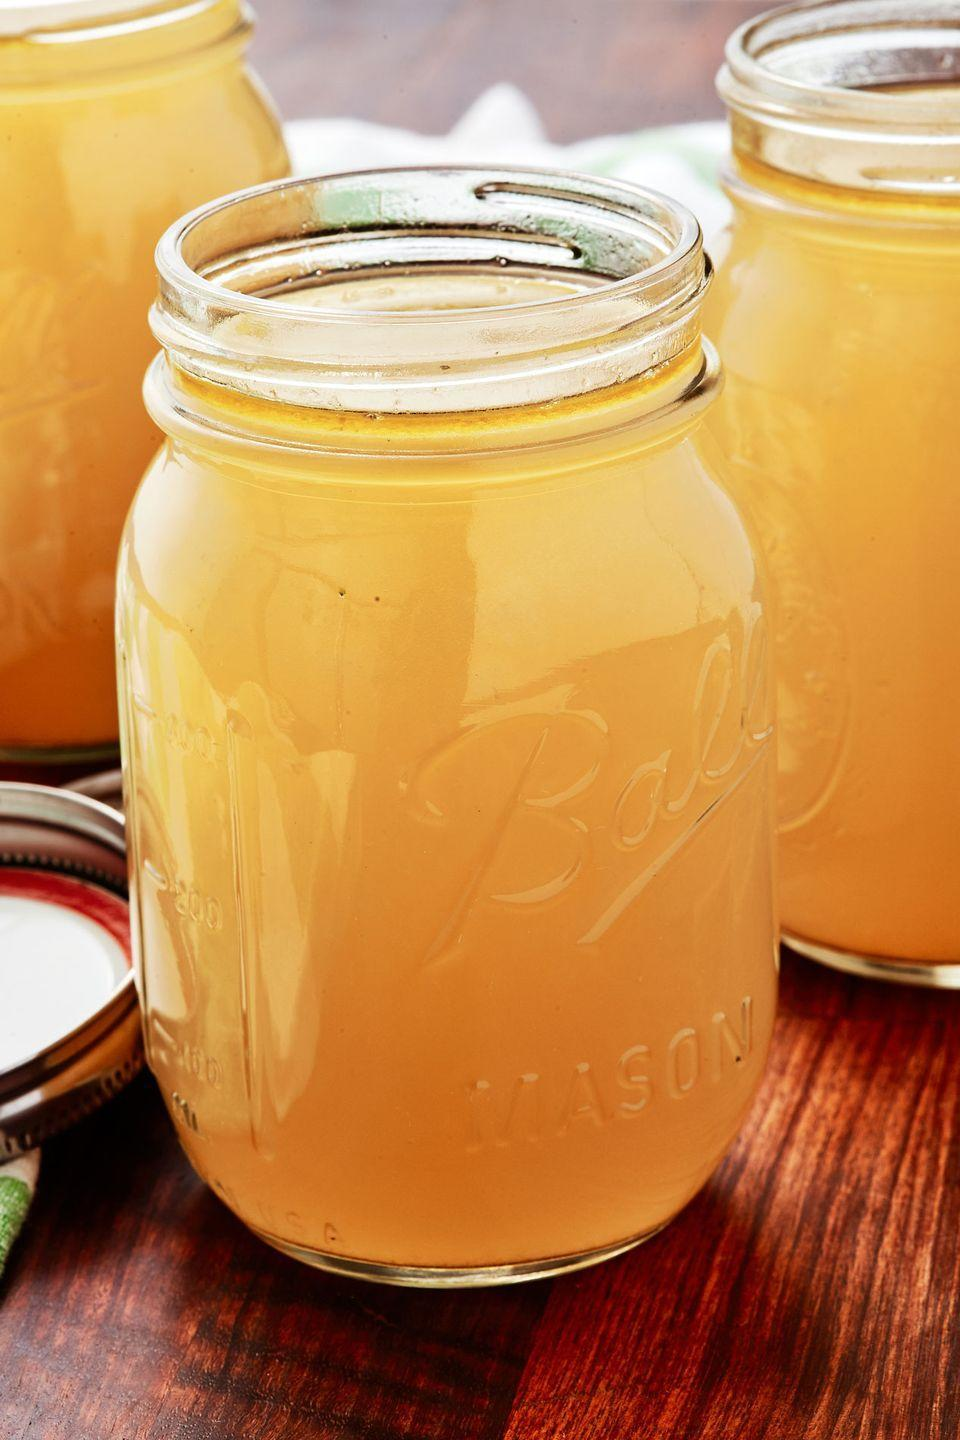 """<p>Before you throw out those bones, make yourself some turkey stock! It'll come in handy the next time you want soup.</p><p>Get the recipe from <a href=""""https://www.delish.com/holiday-recipes/thanksgiving/a29087881/homemade-turkey-stock-recipe/"""" rel=""""nofollow noopener"""" target=""""_blank"""" data-ylk=""""slk:Delish"""" class=""""link rapid-noclick-resp"""">Delish</a>.</p>"""